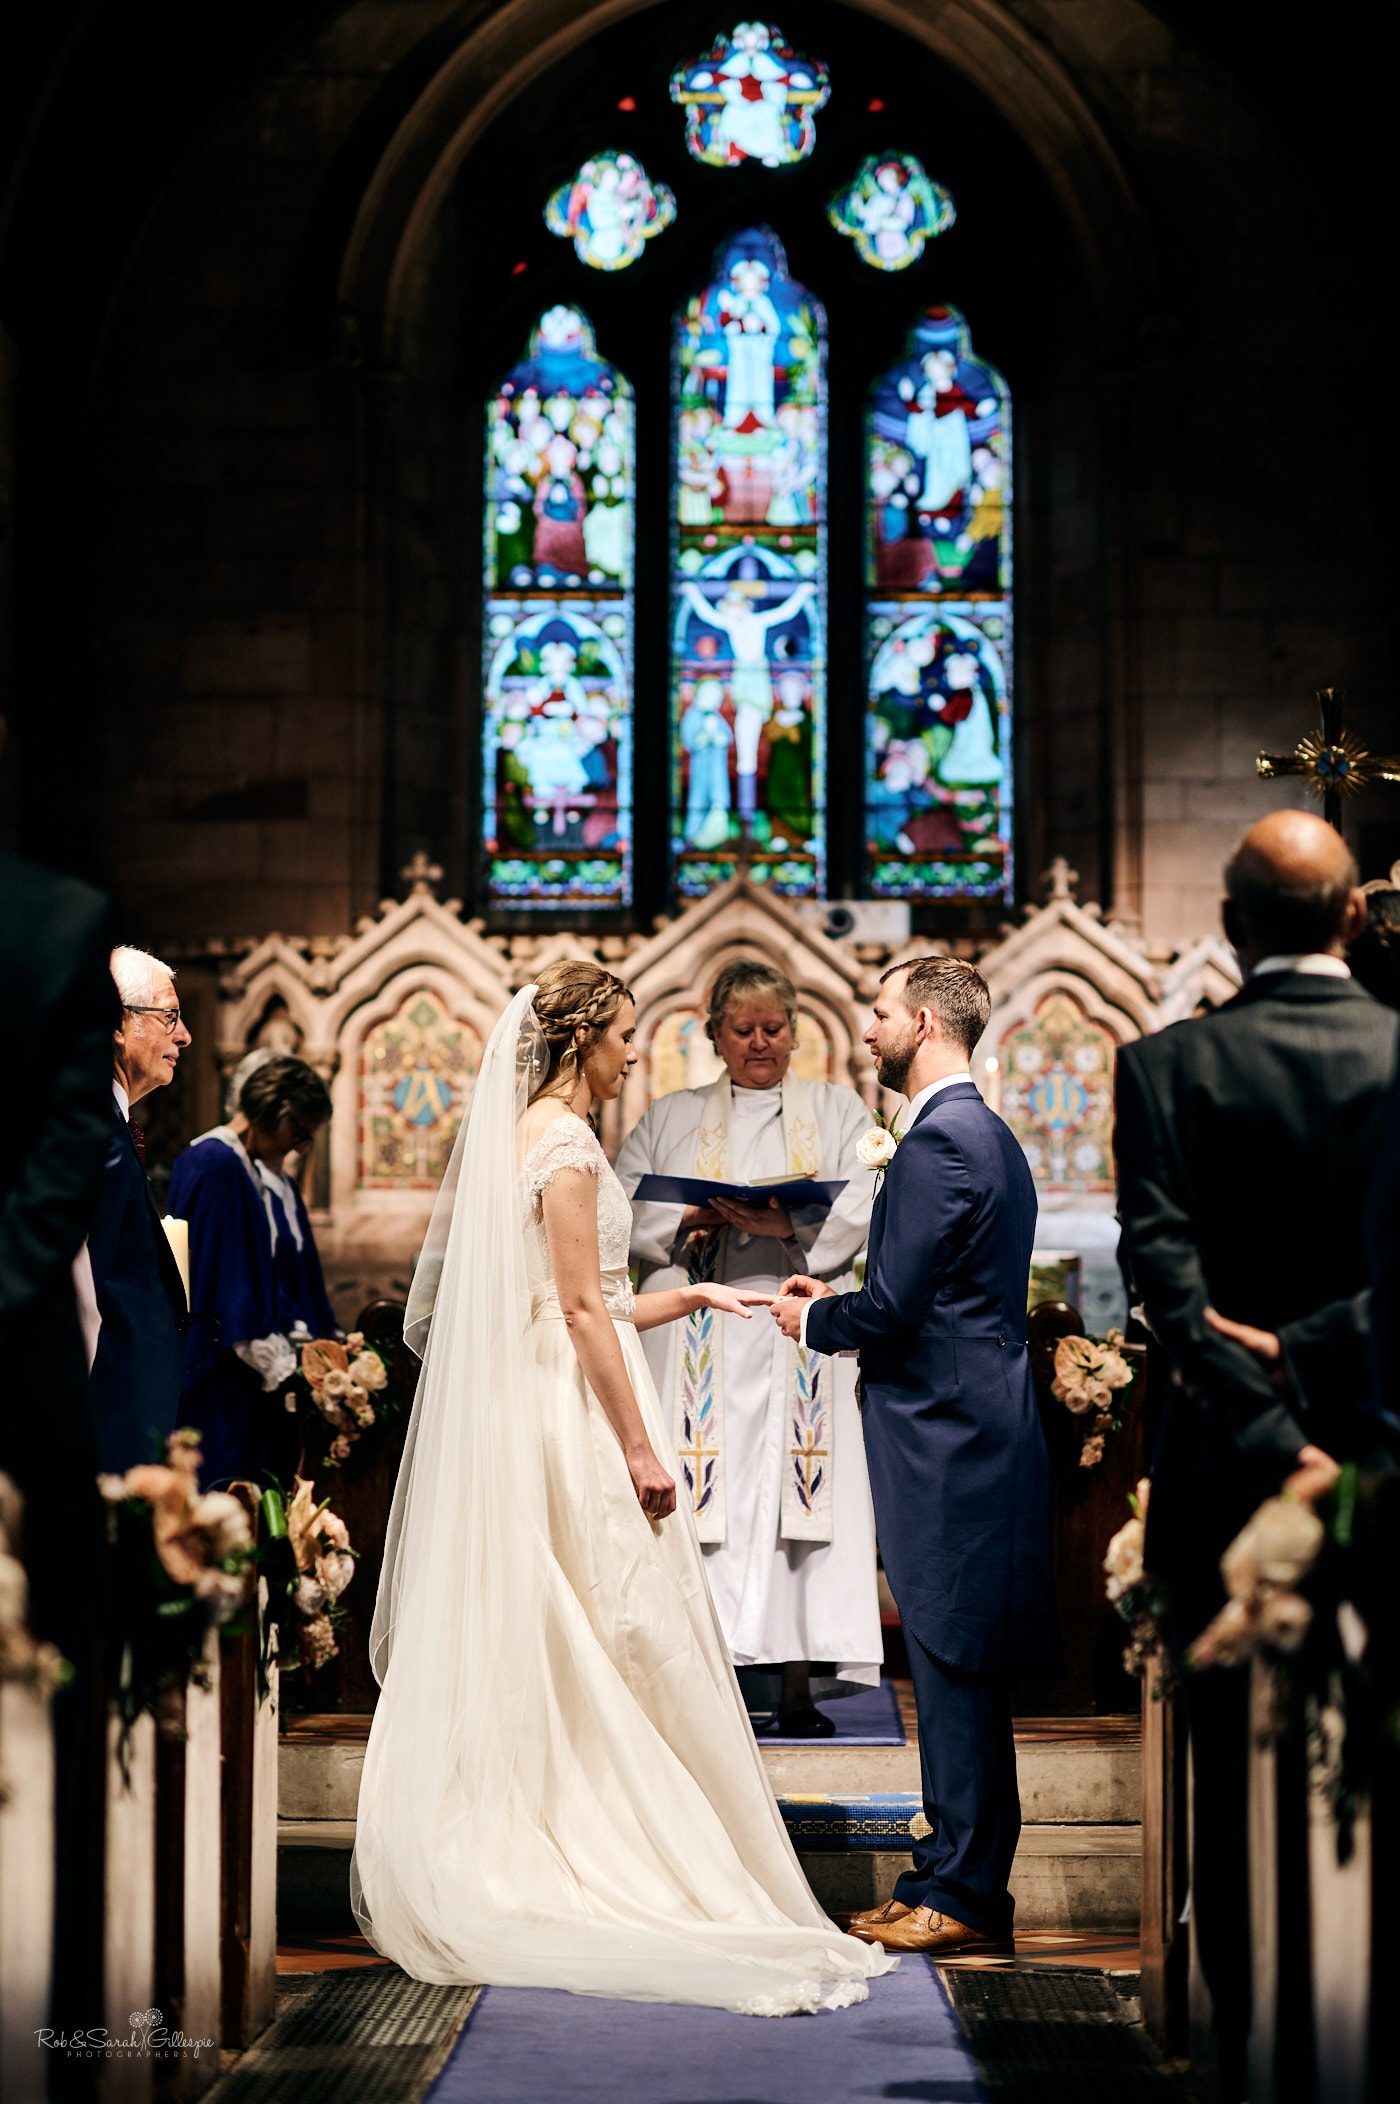 Bride and groom exchange rings during wedding at St Peter's church Pedmore